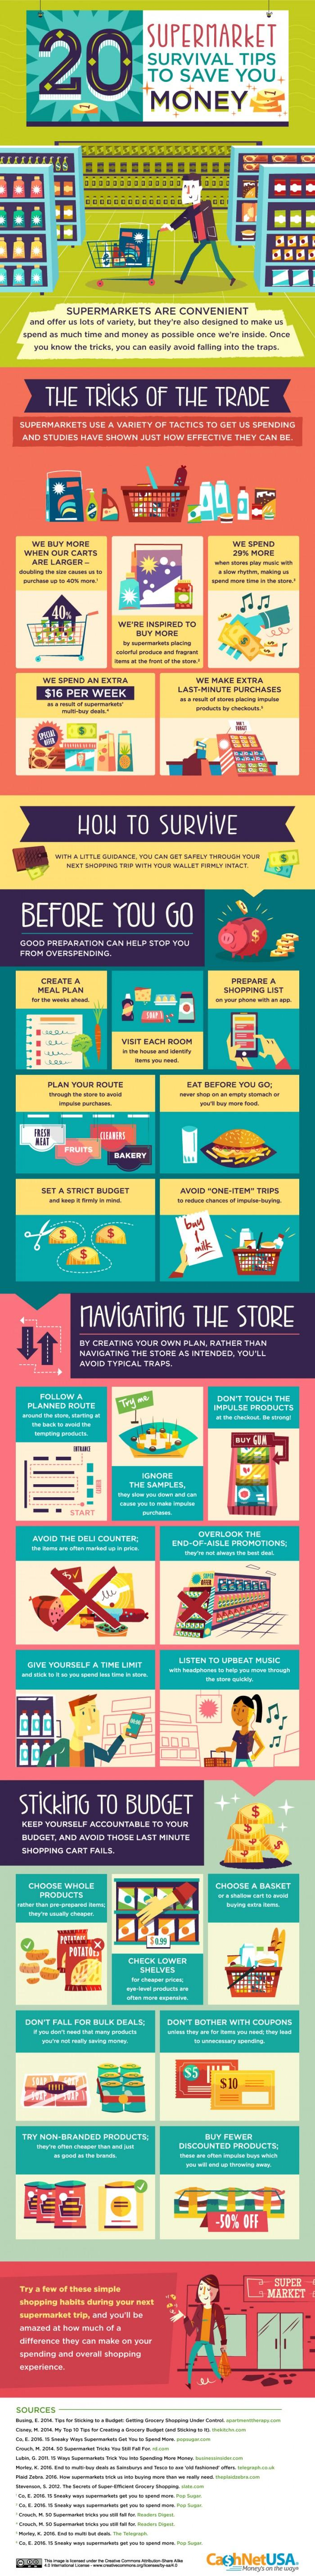 20-supermarket-survival-tips-to-save-you-money